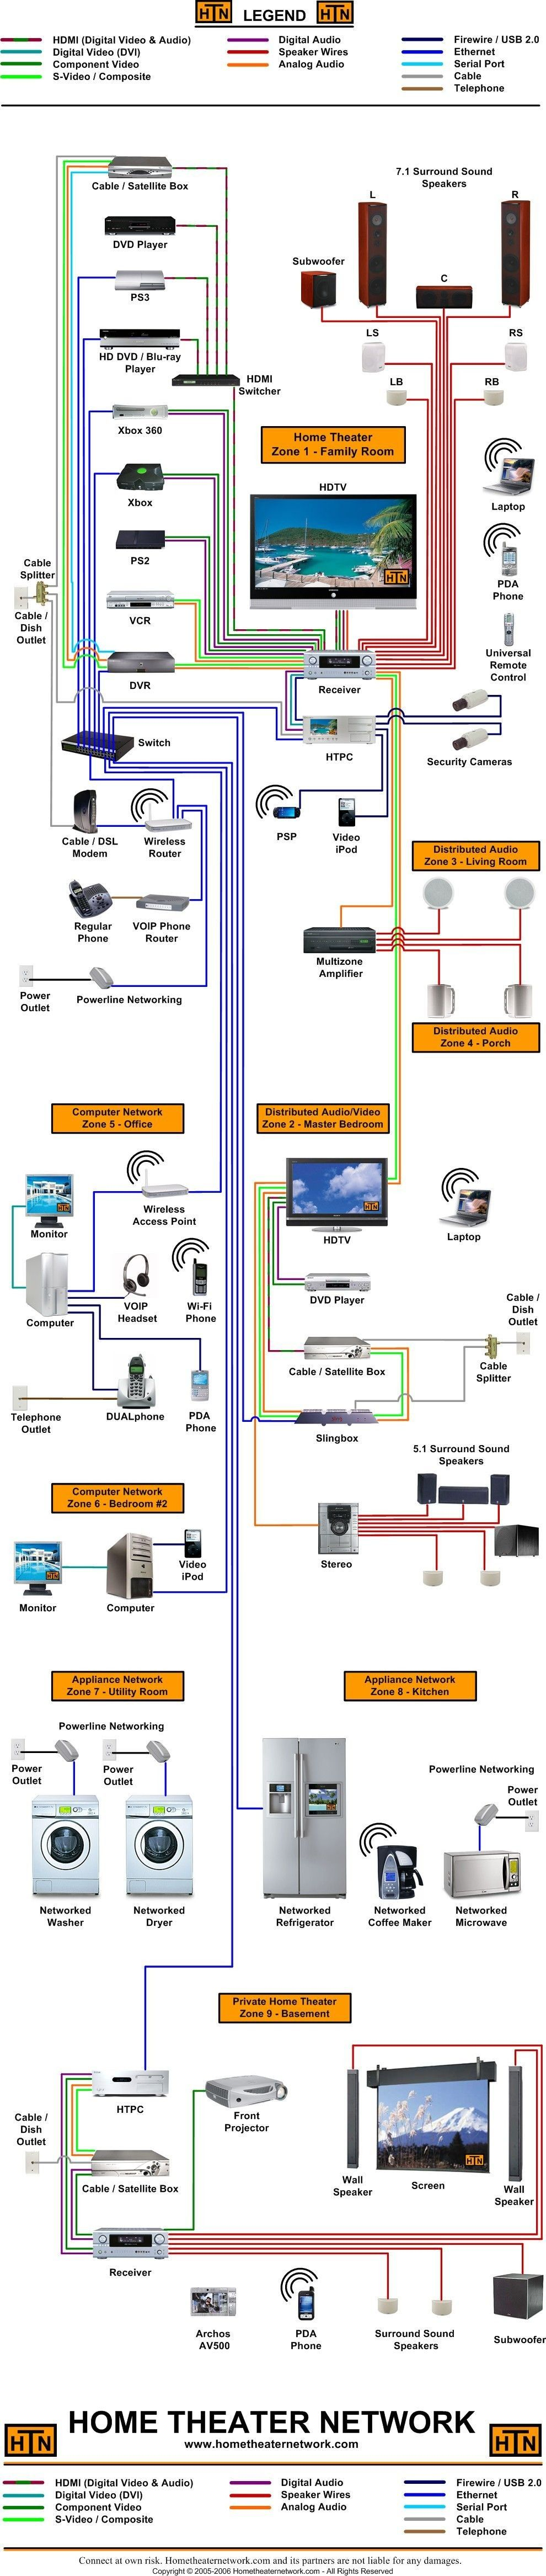 DIAGRAM] Home Theater Wiring Diagram FULL Version HD Quality Wiring Diagram  - DIAGRAMIFY.SMPAVULLO.IT | Home Entertainment Wiring Guide |  | Diagram Database - Smpavullo.it